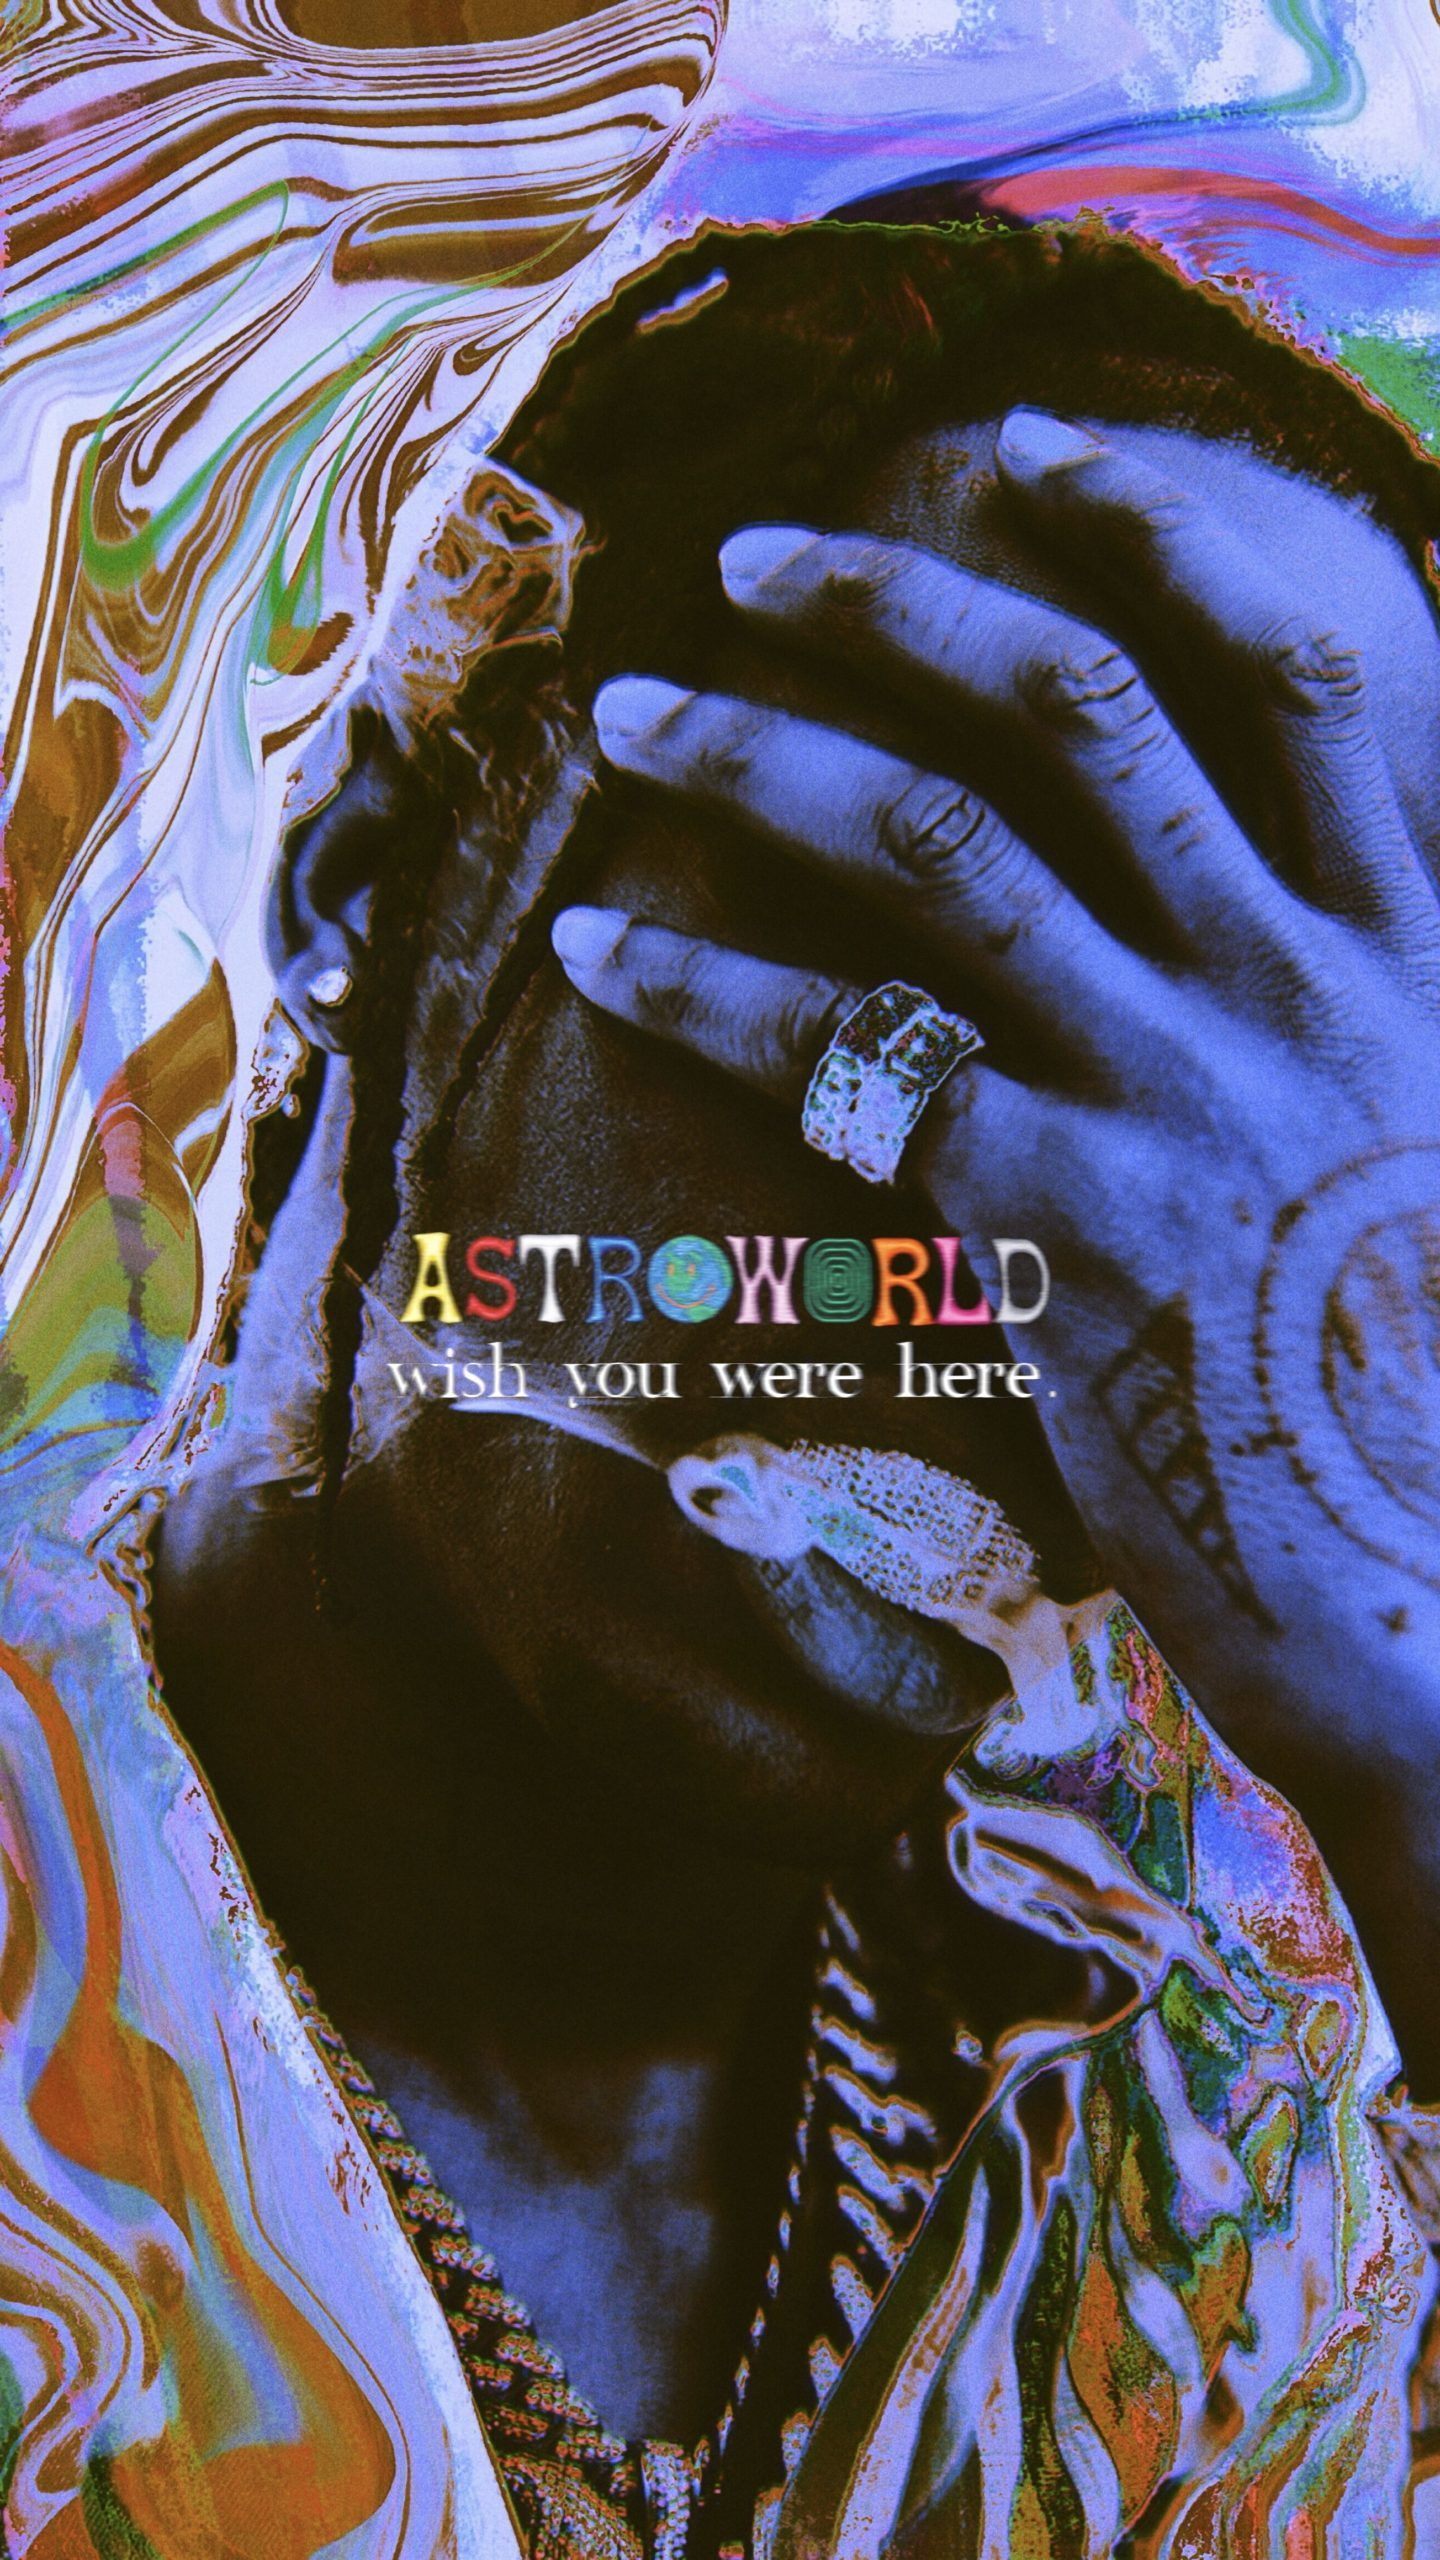 Astroworld Wallpaper 2 In 2020 Travis Scott Wallpapers Travis Scott Iphone Wallpaper Hype Wallpaper